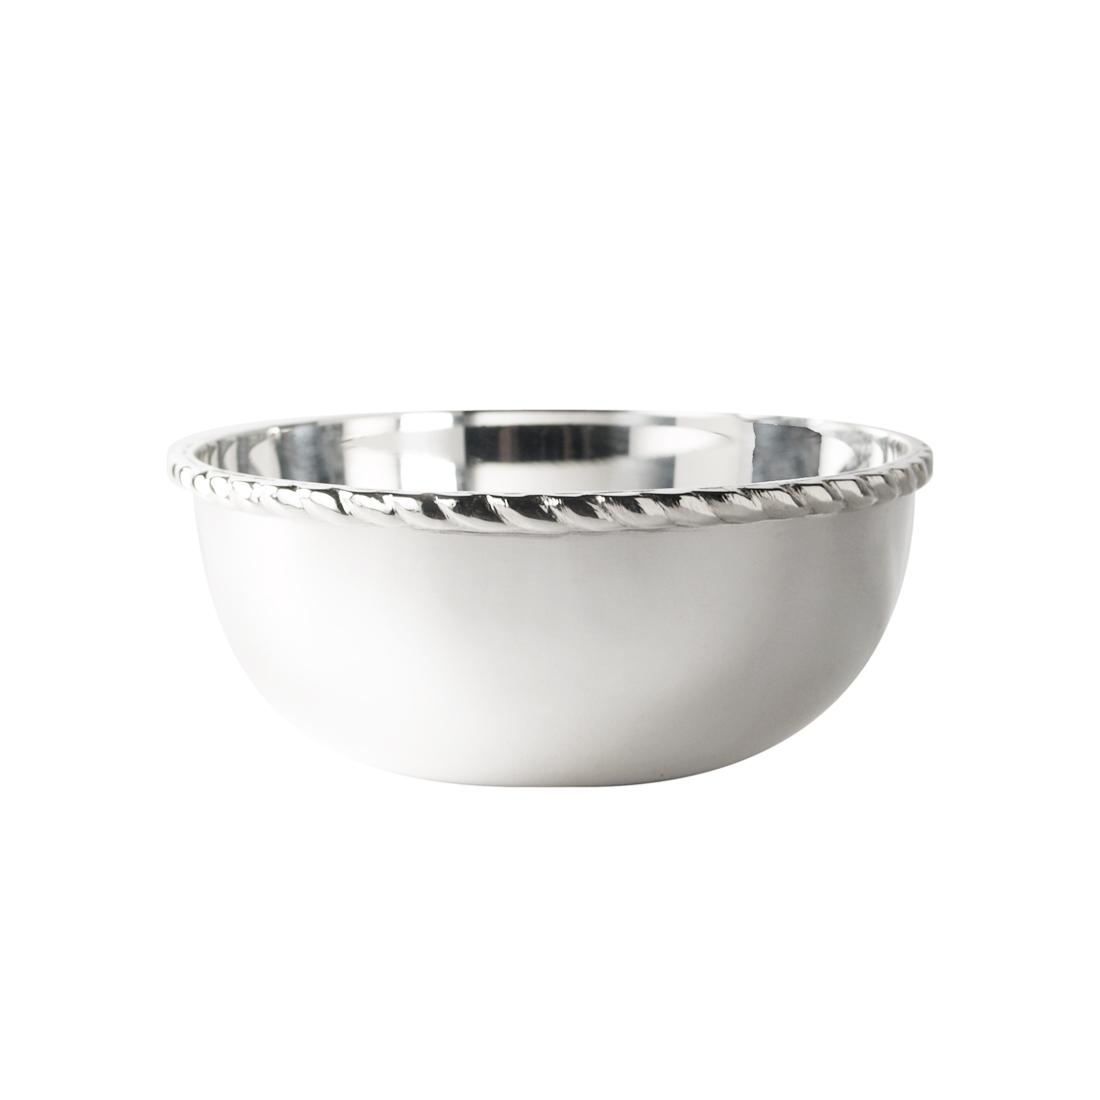 "4"" Silver Plated Finger Bowl in Rope"